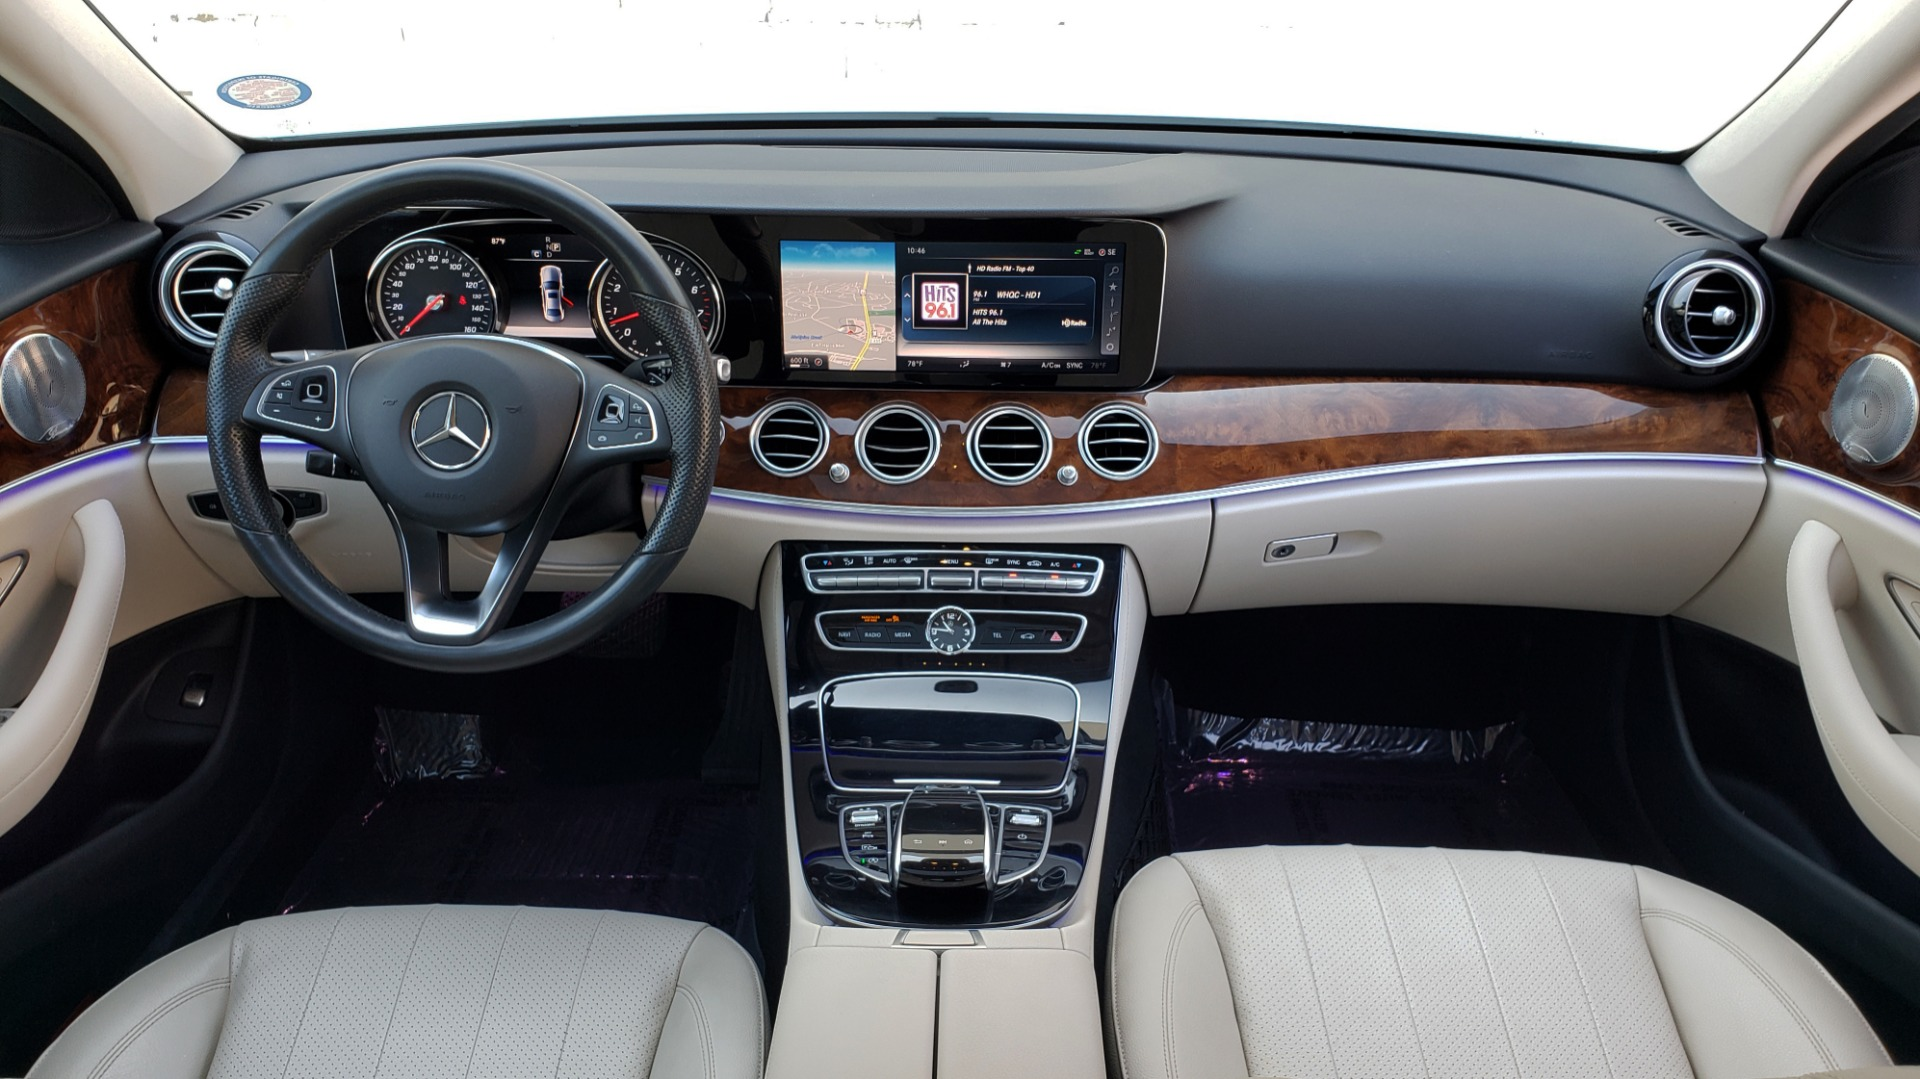 Used 2017 Mercedes-Benz E-Class E 300 PREMIUM / RWD / NAV / SNF / PARKING PILOT / REARVIEW / BURMESTER for sale Sold at Formula Imports in Charlotte NC 28227 69